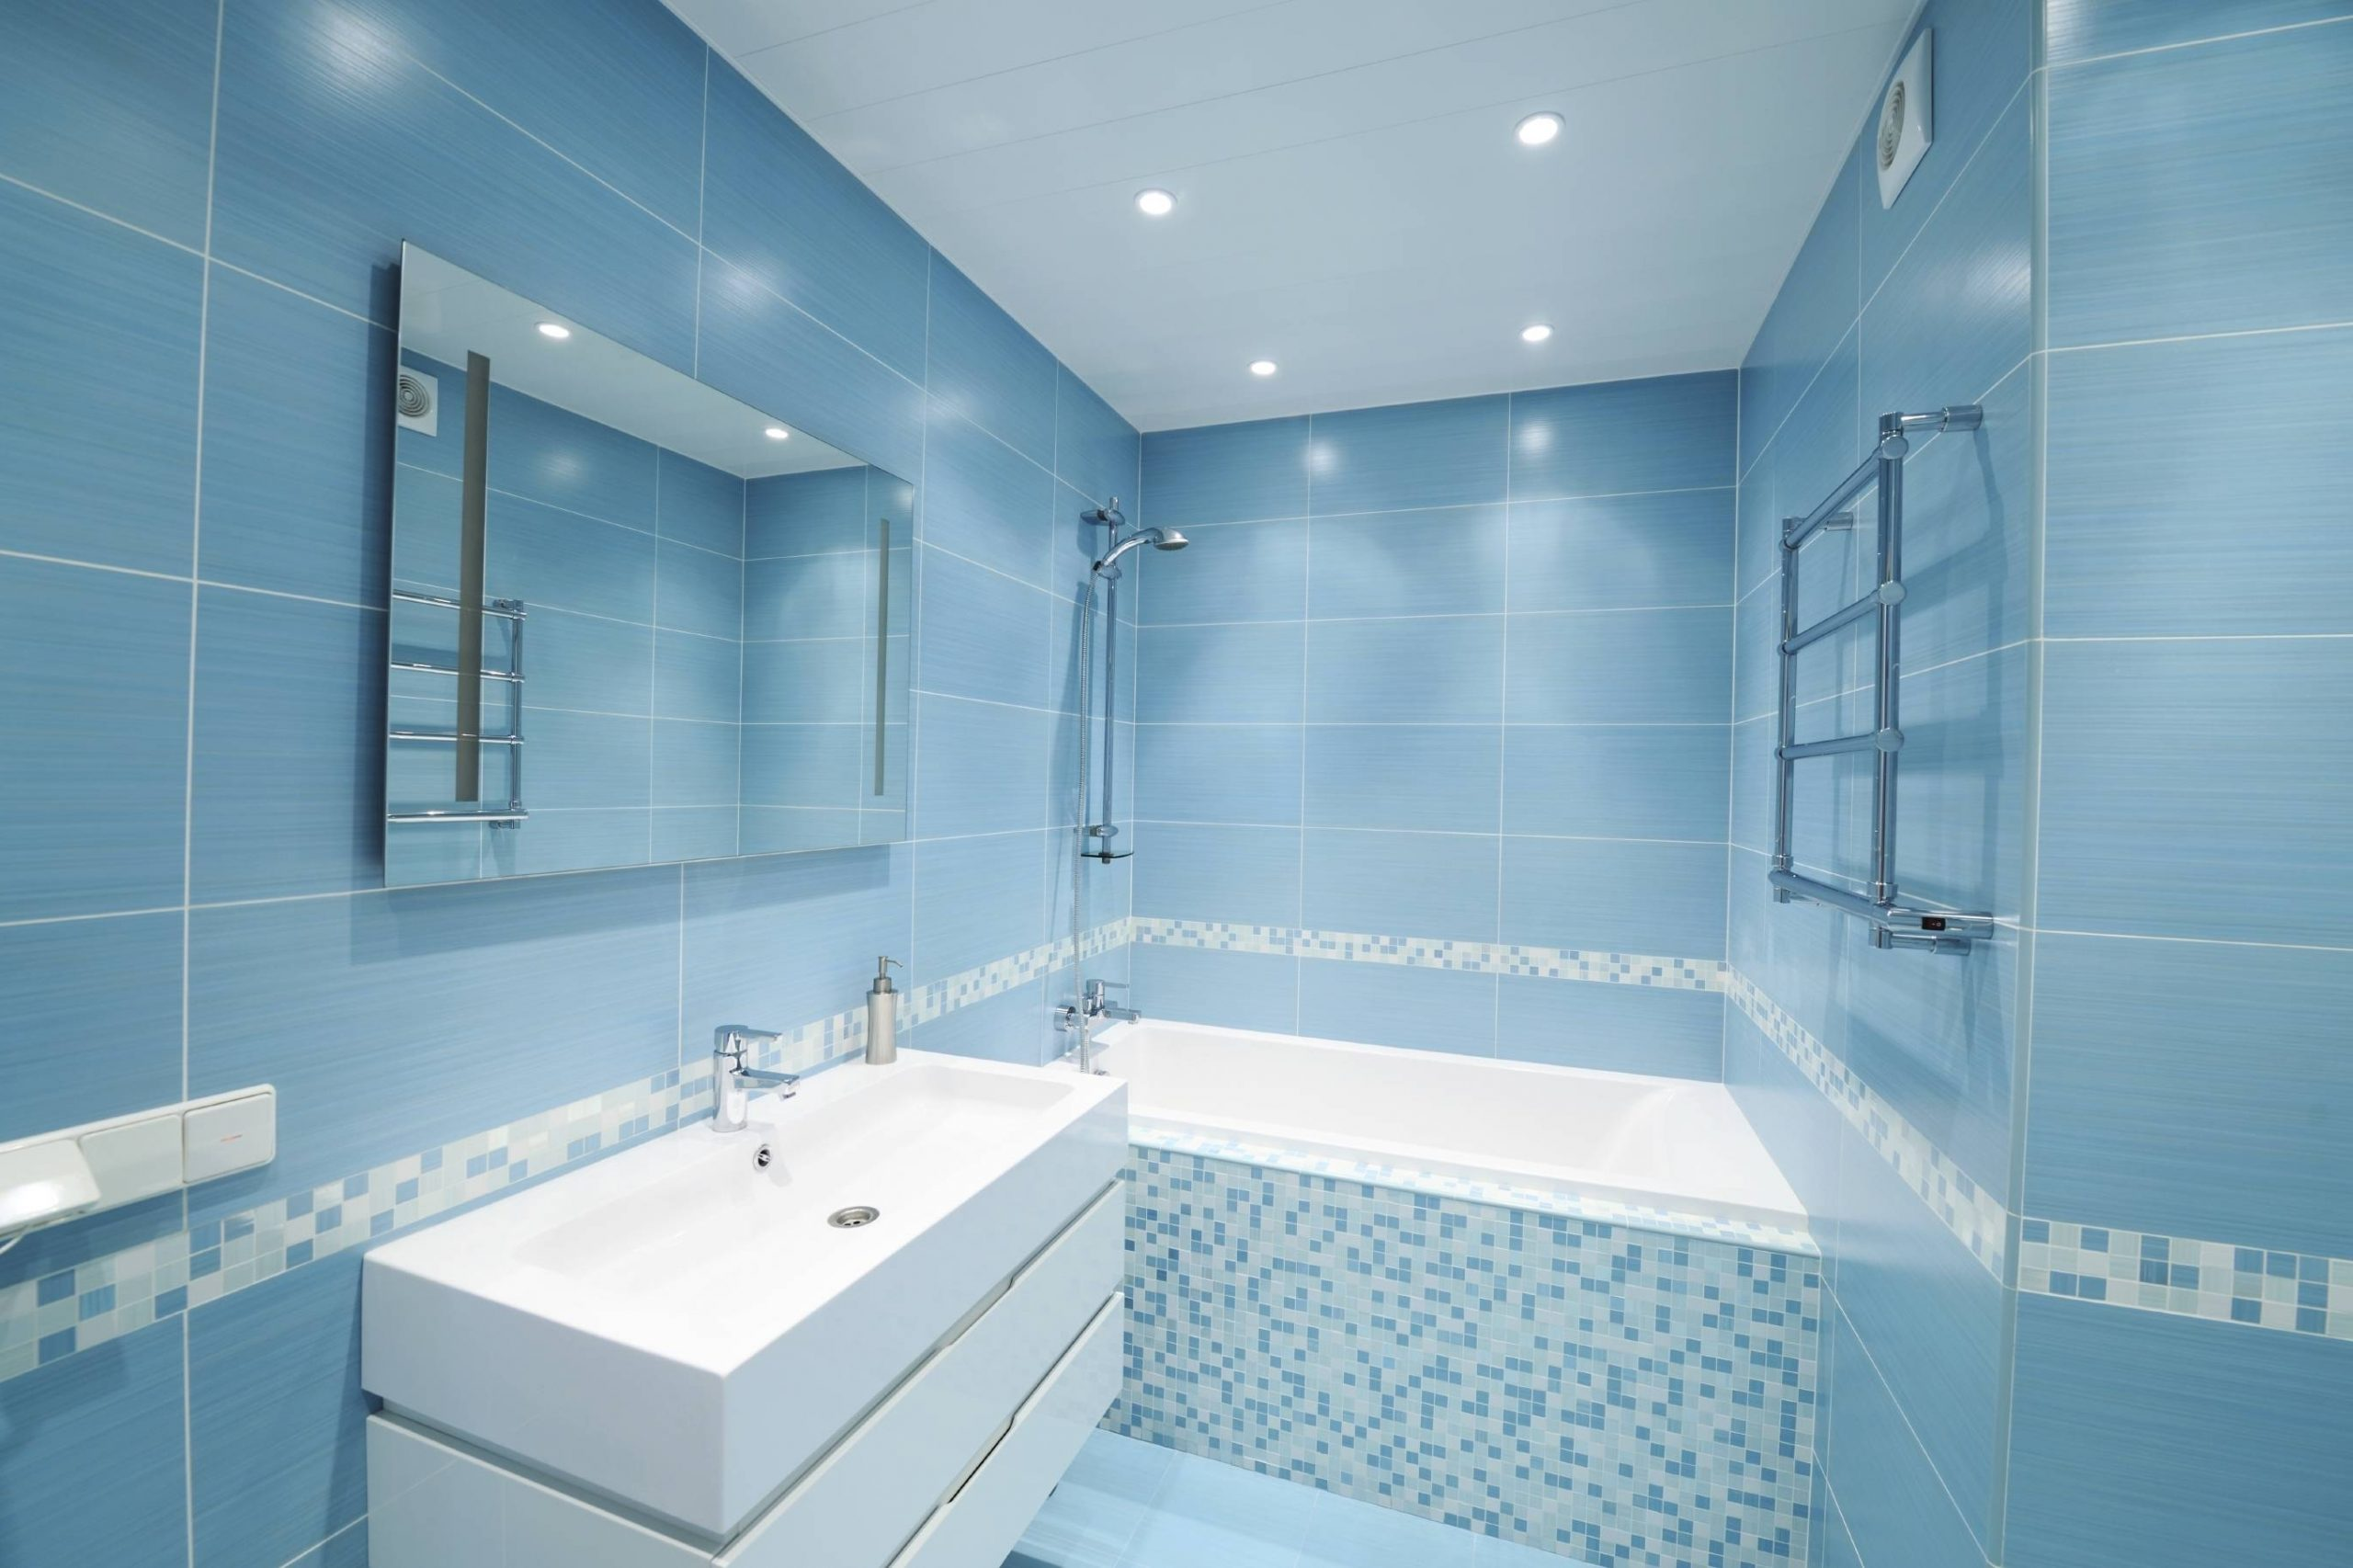 Shocking Blue Bathroom Tiles Style Kerala Designs Youtube Bathroom Tiles Designs Kerala